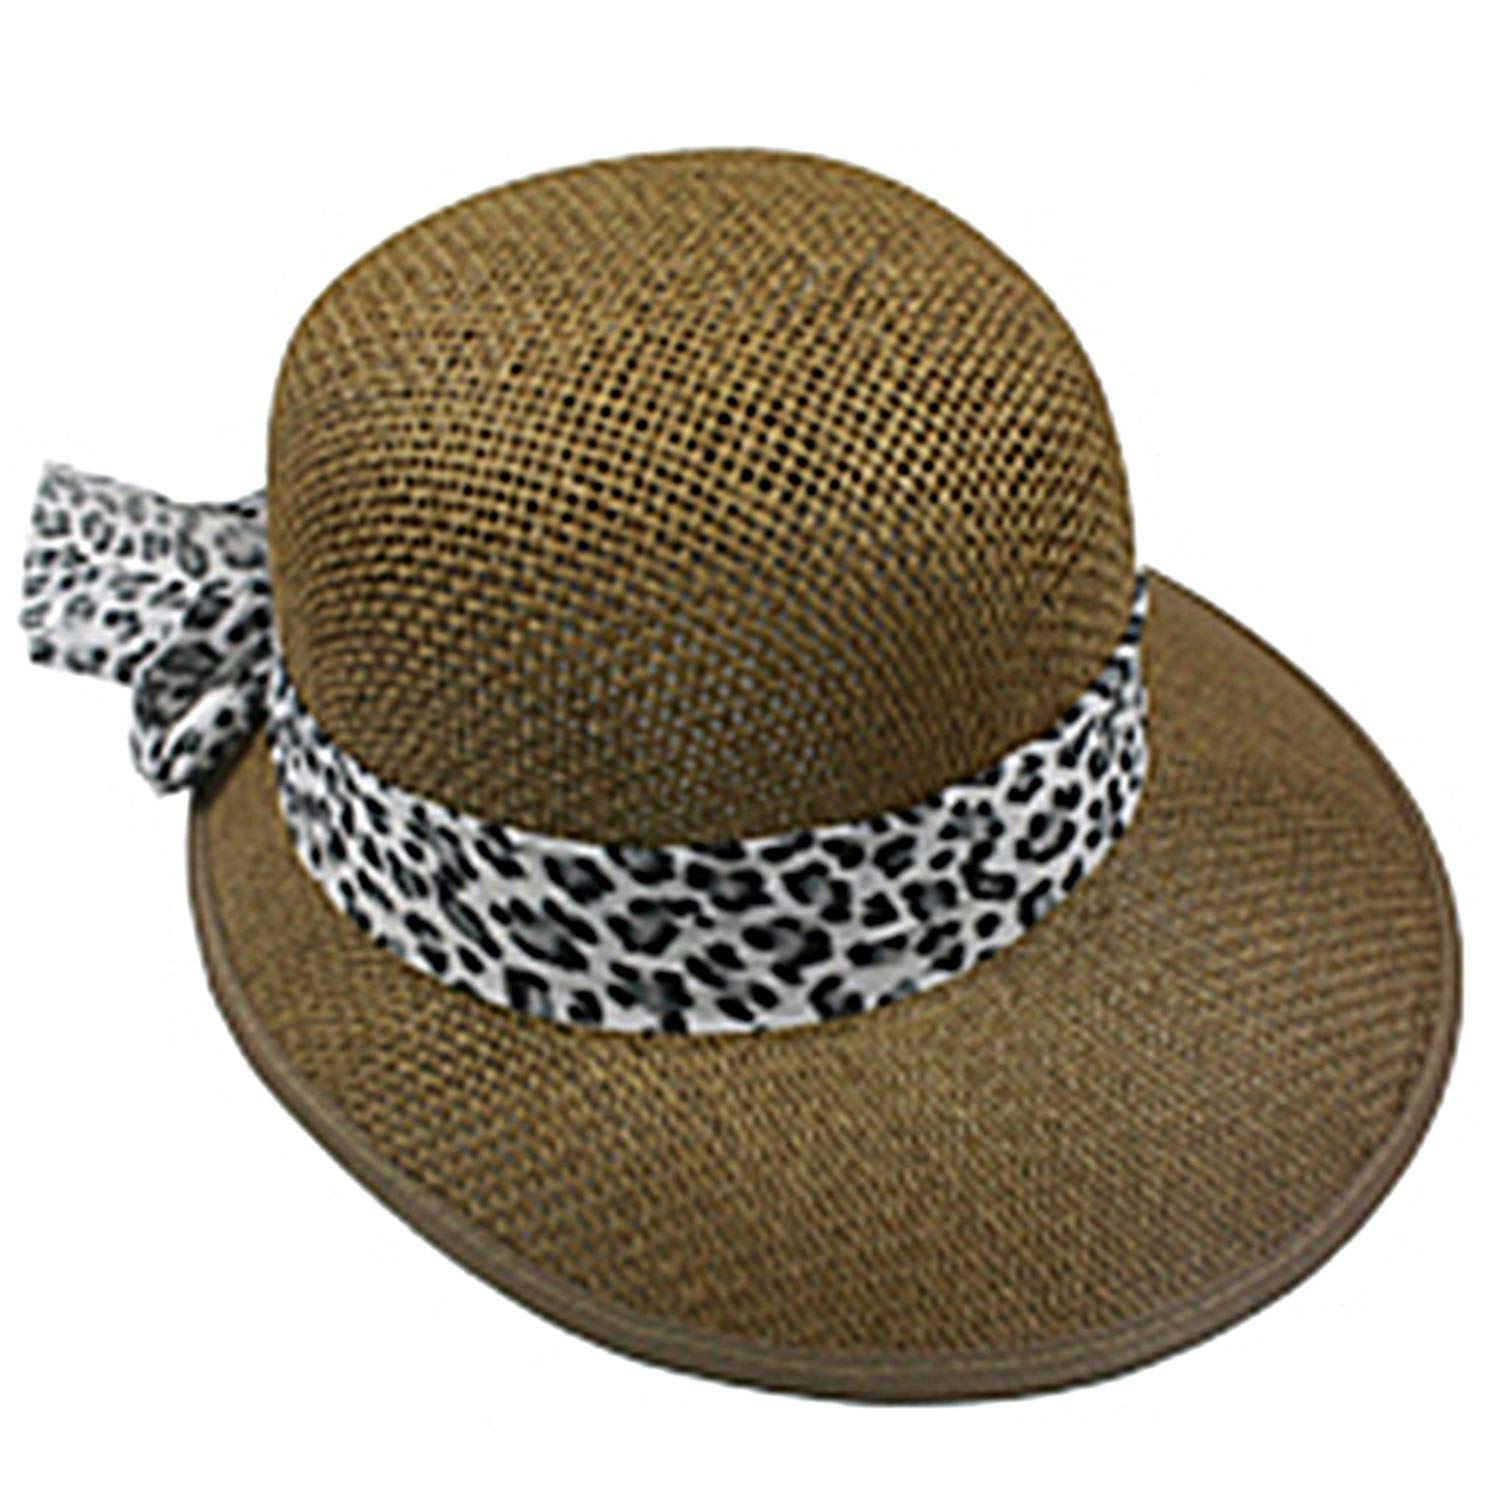 Silver Fever Women Summer Fancy Sun Hat Fits All (Brown with Cheetah)